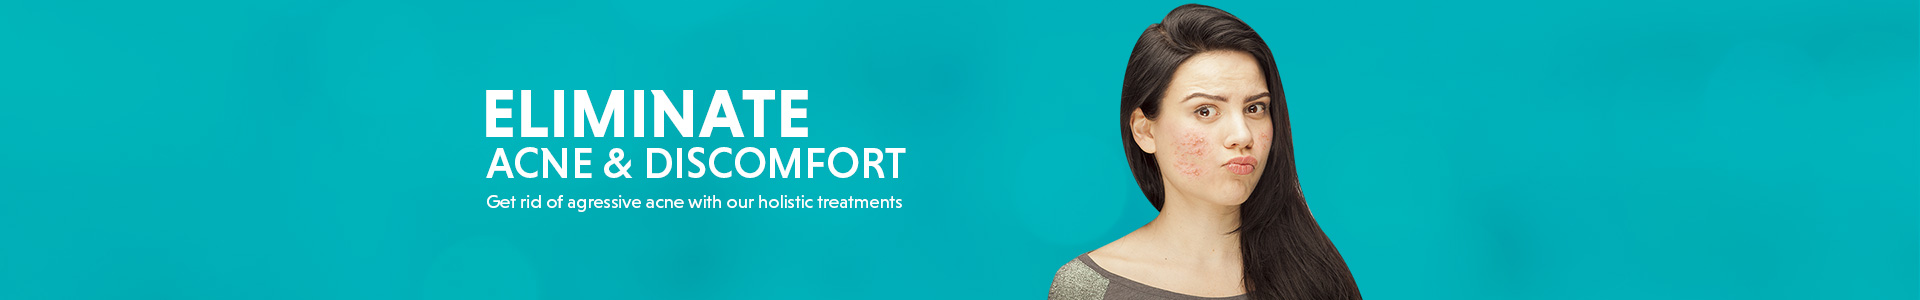 acne treatment offer